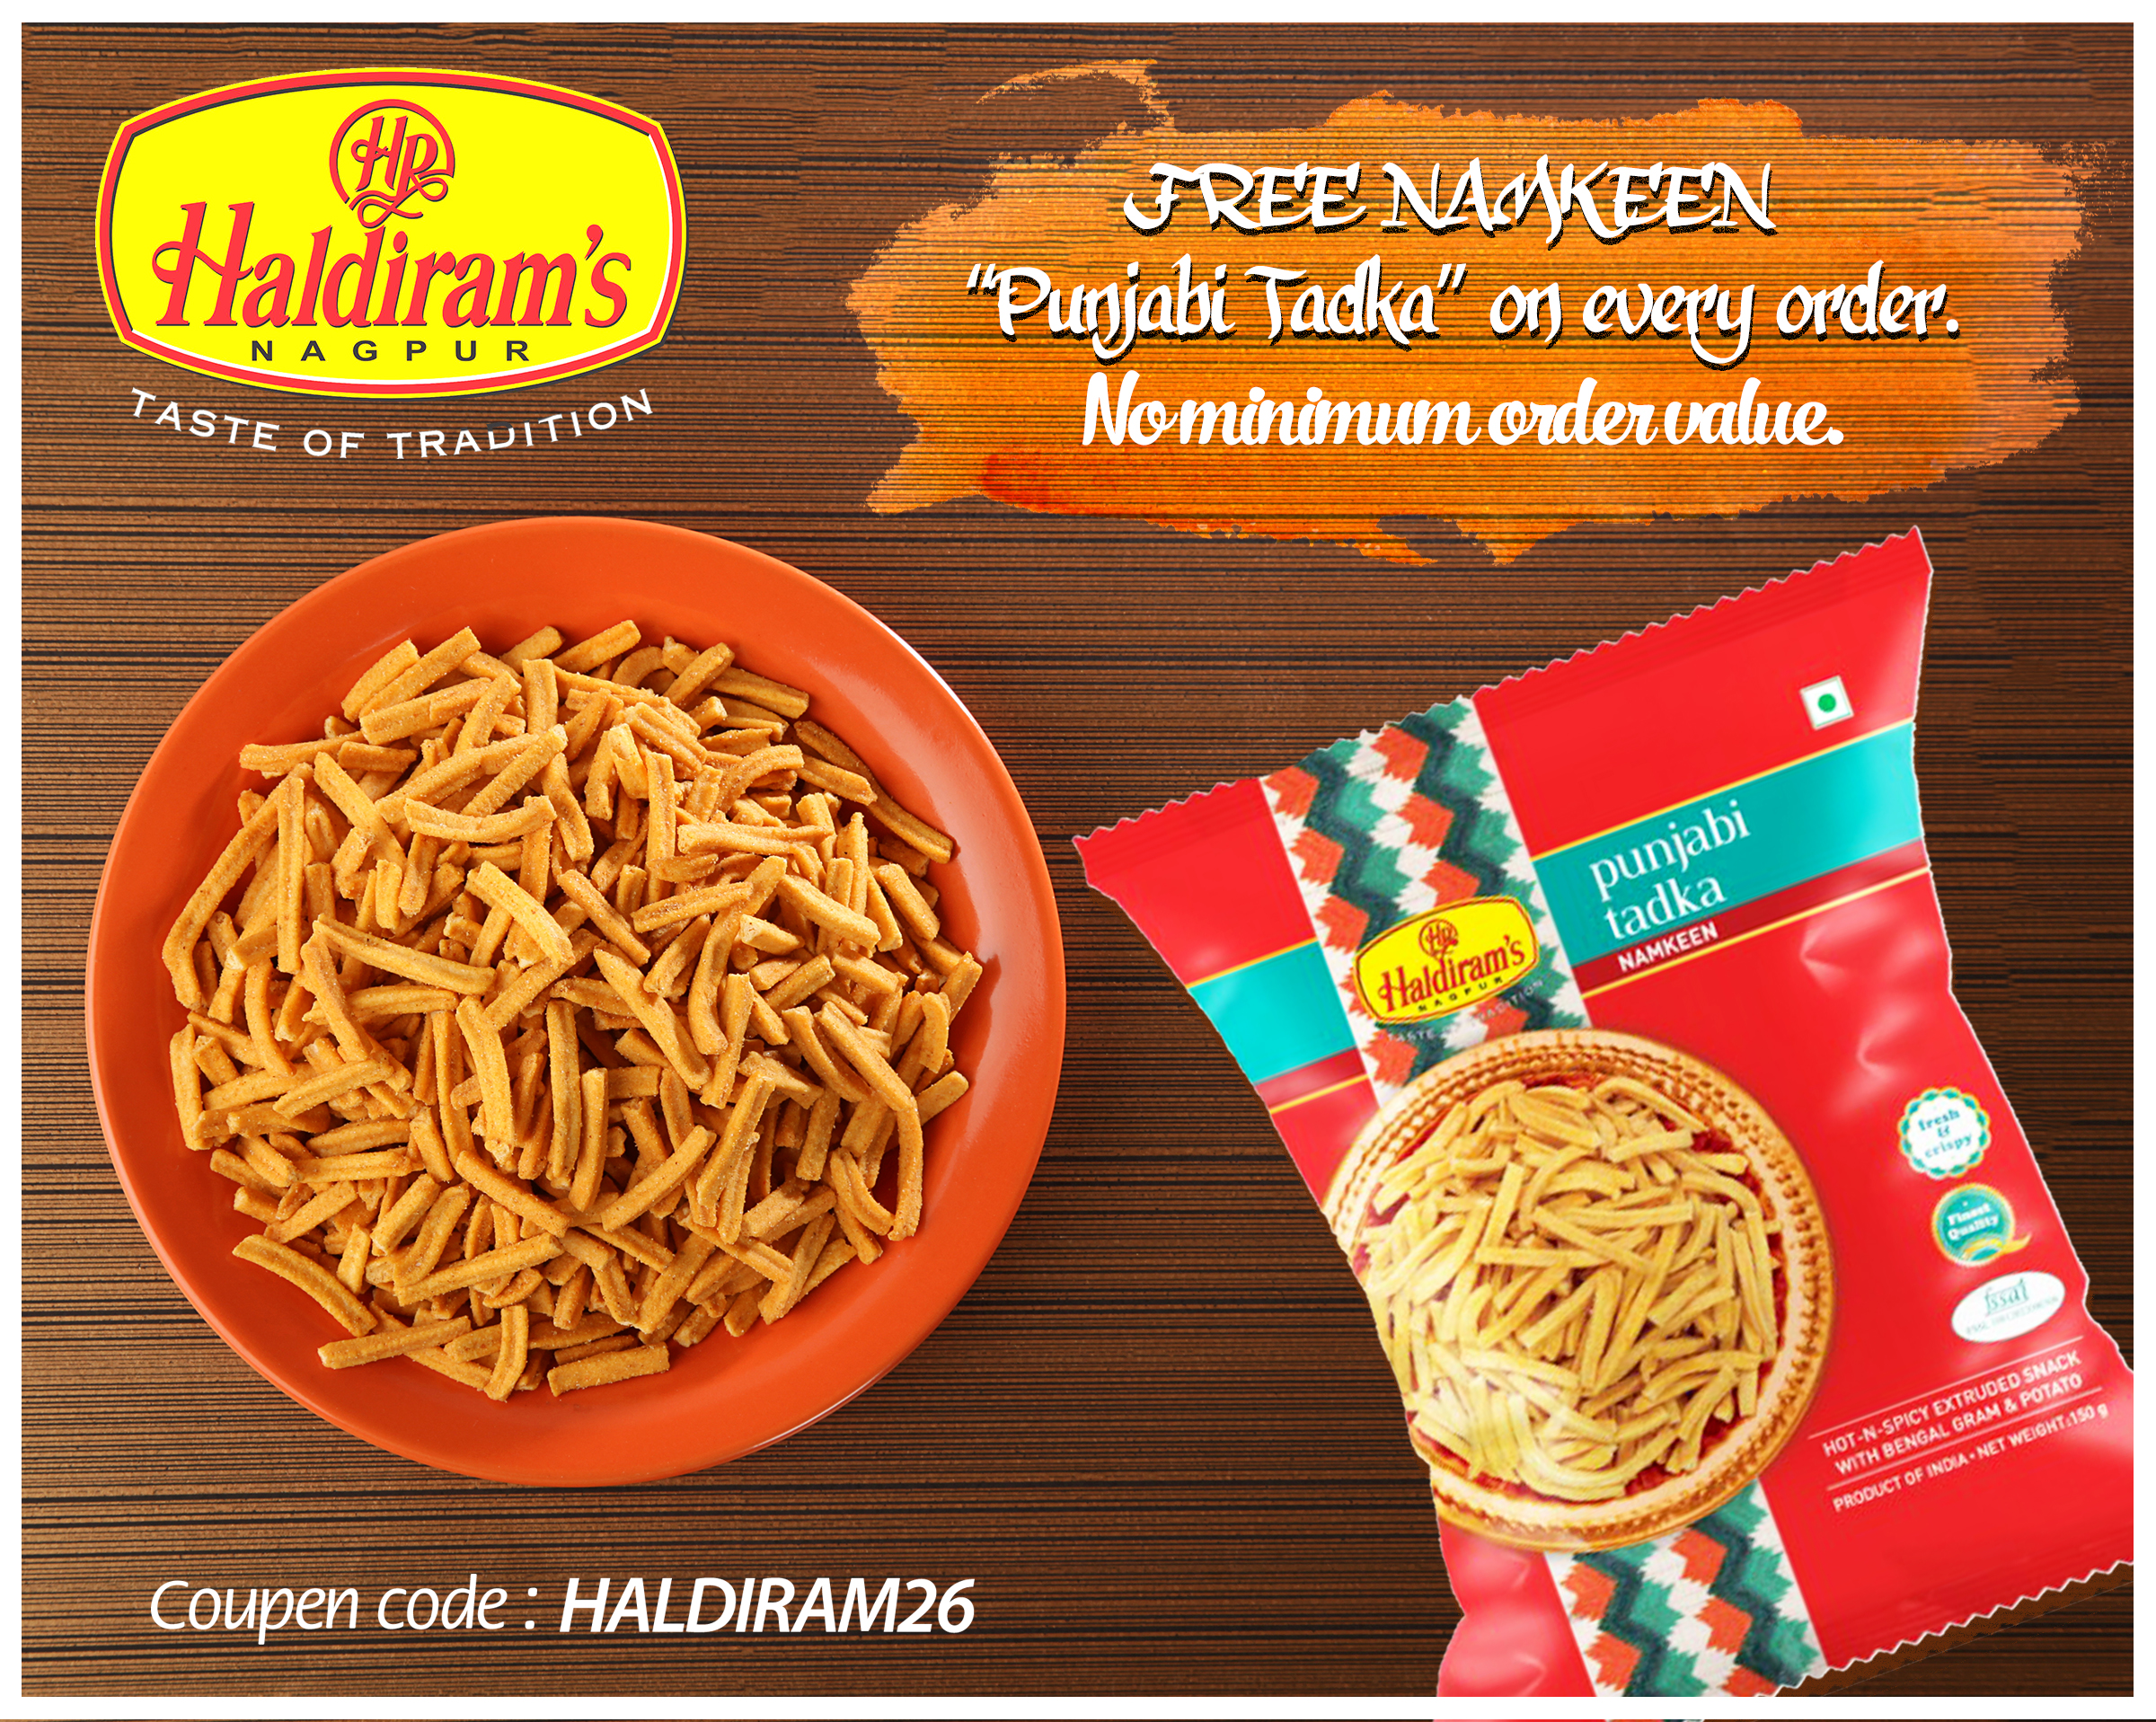 Haldirams, Haldirams Nagpur, Haldirams Nagpur Reviews, Haldirams Offer, Haldirams Namkeen